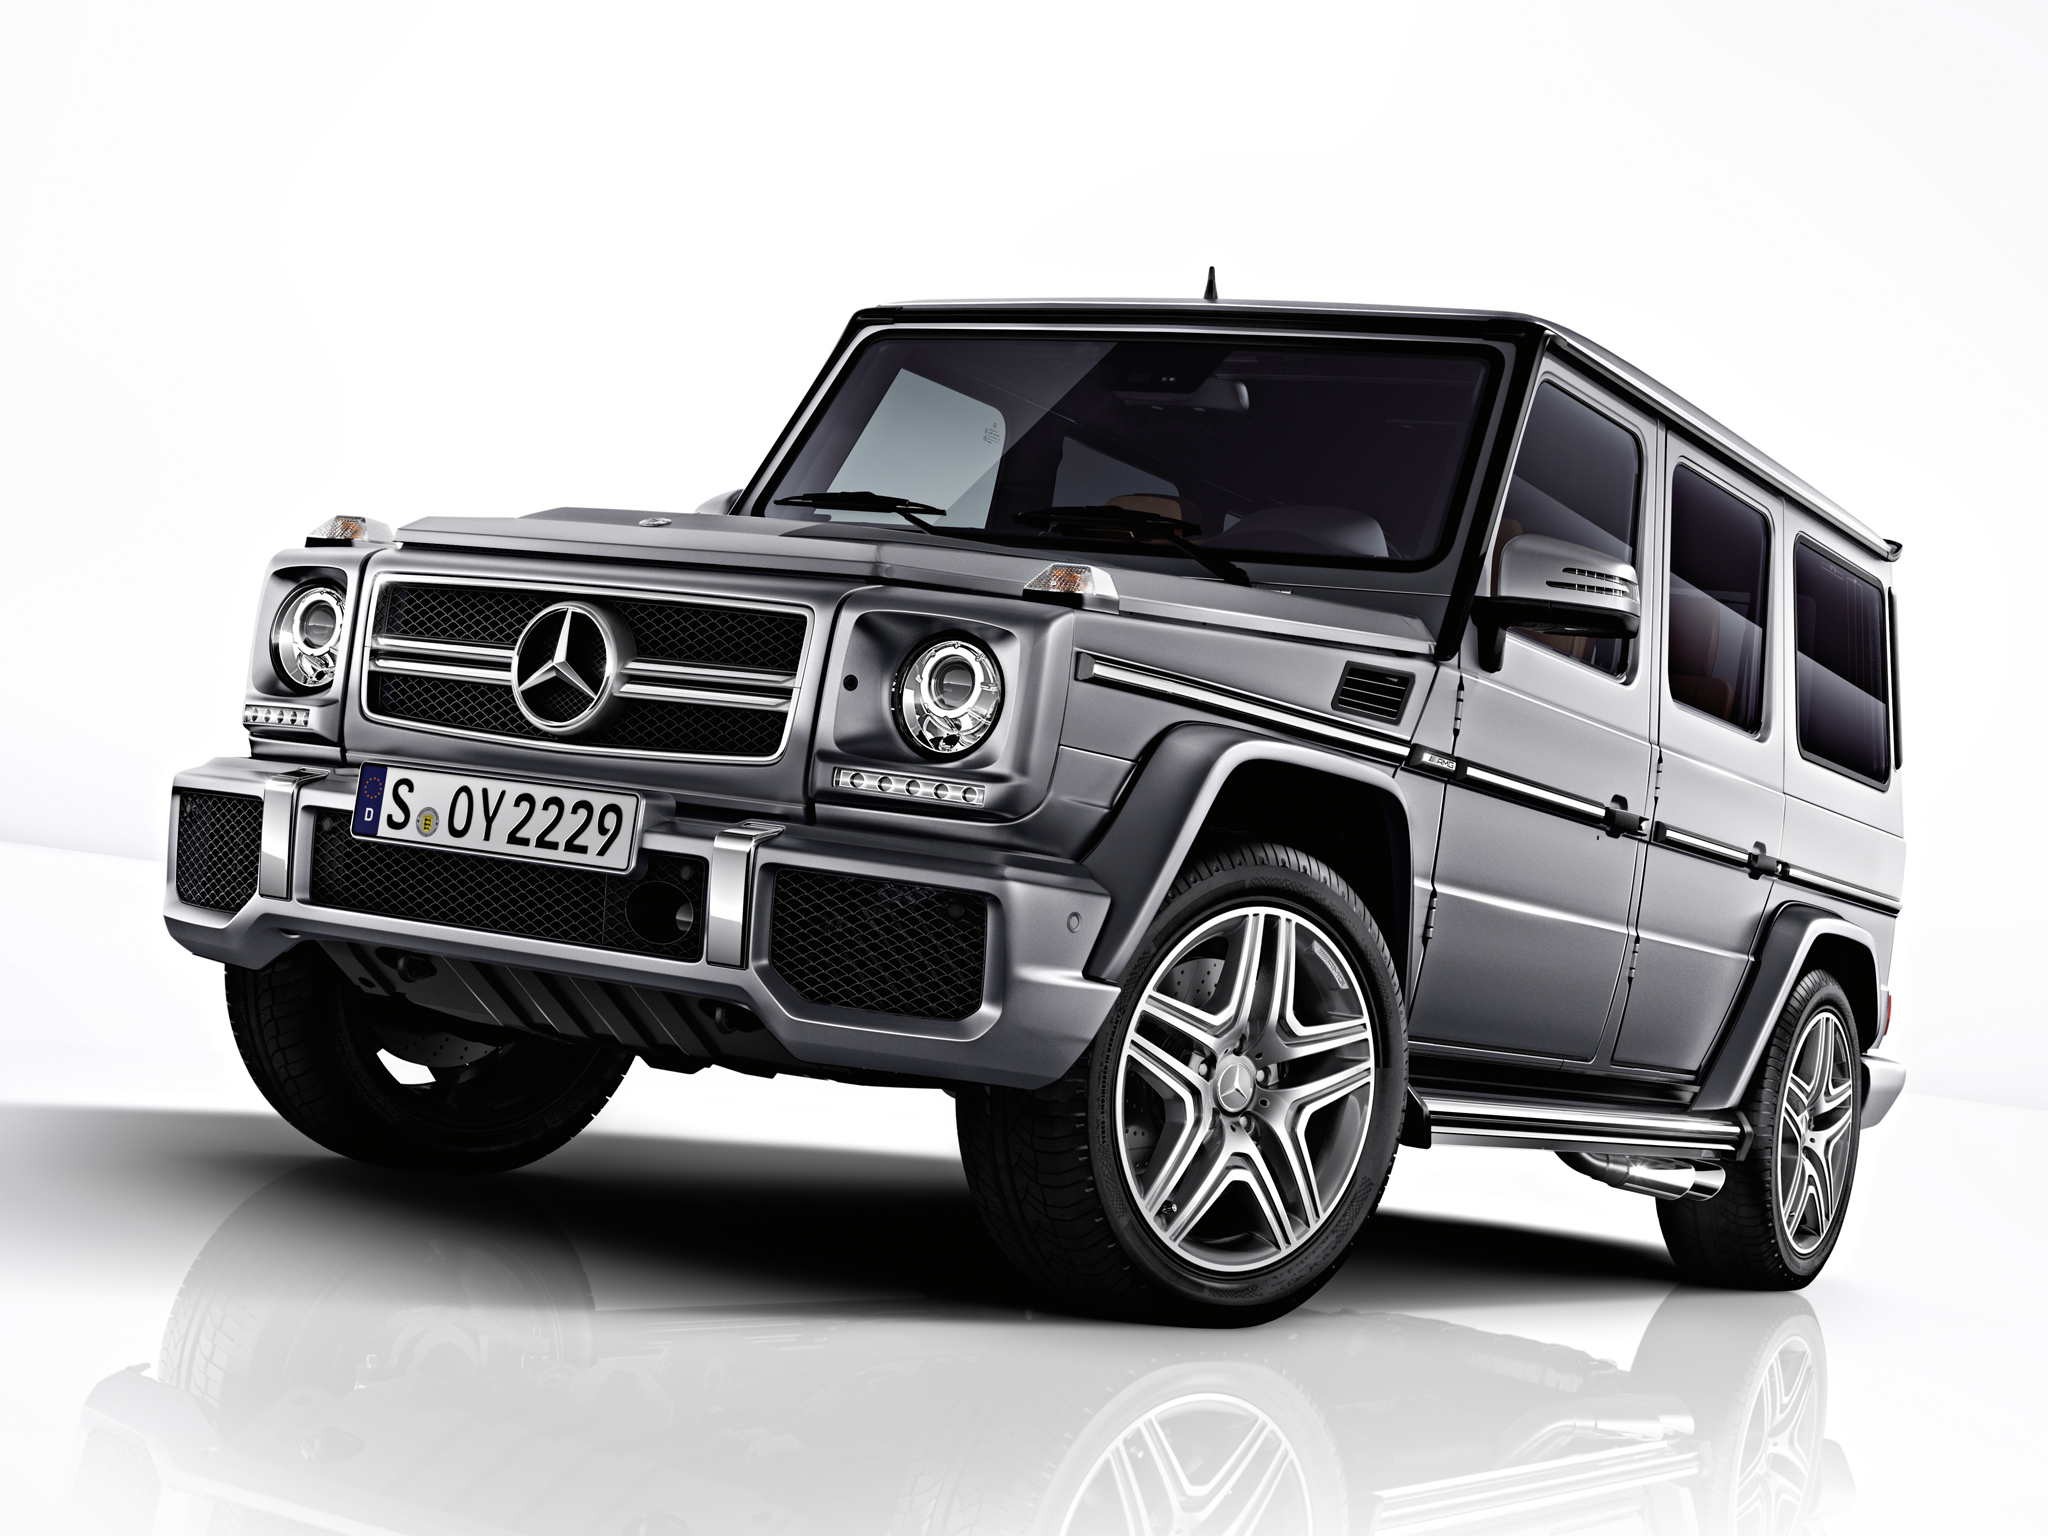 mercedes benz g class amg photos reviews news specs buy car. Black Bedroom Furniture Sets. Home Design Ideas